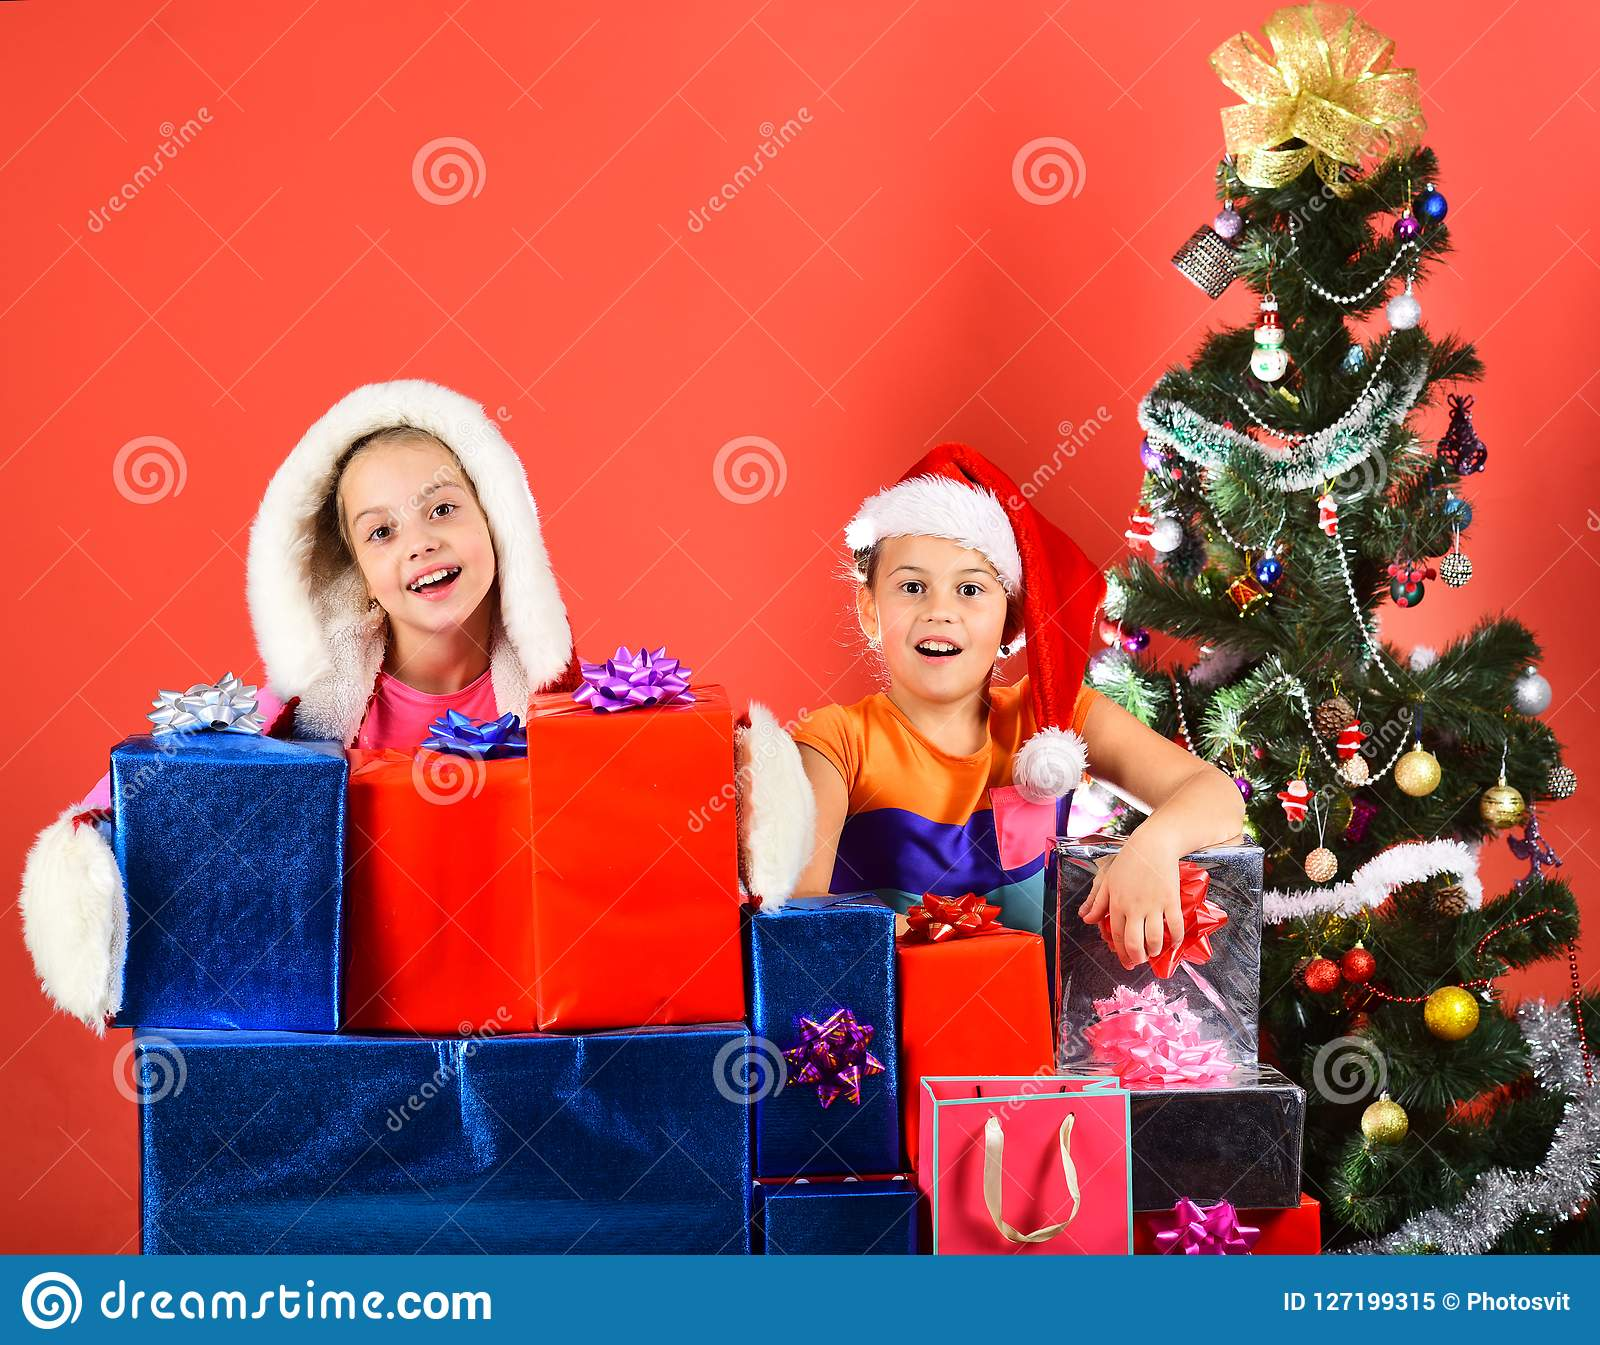 Girls celebrate New Year. Partying and holiday concept.